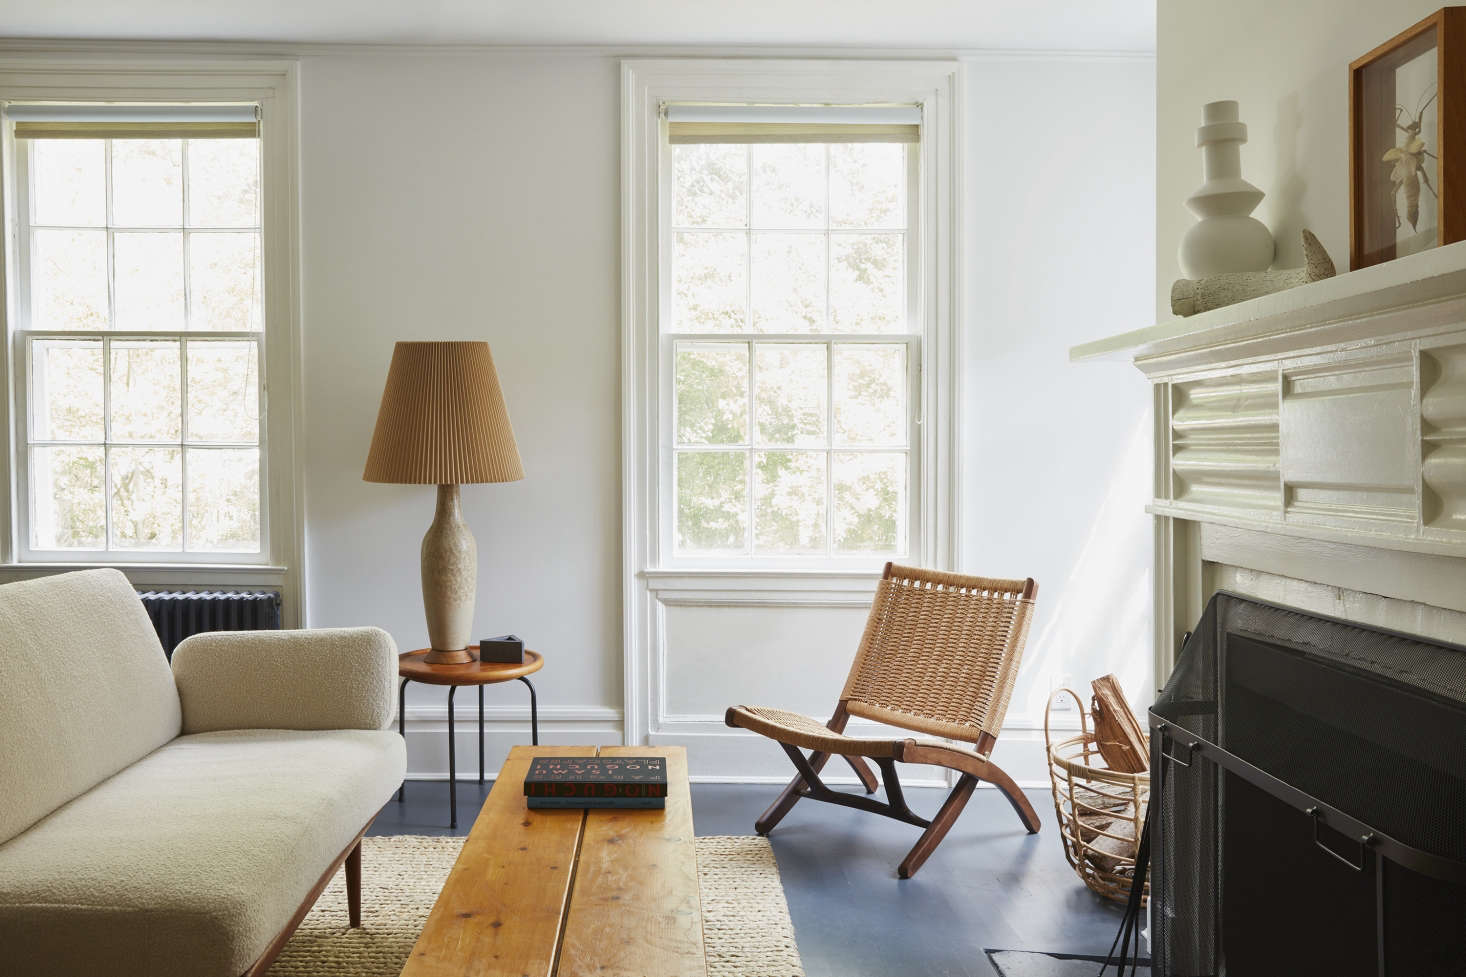 Navy floors in A Colonial House in Bellport with Uncommon Style from French Designer C. S. Valentin. Styling by Alexa Hotz and photography by Jonathan Hökklo for Remodelista.